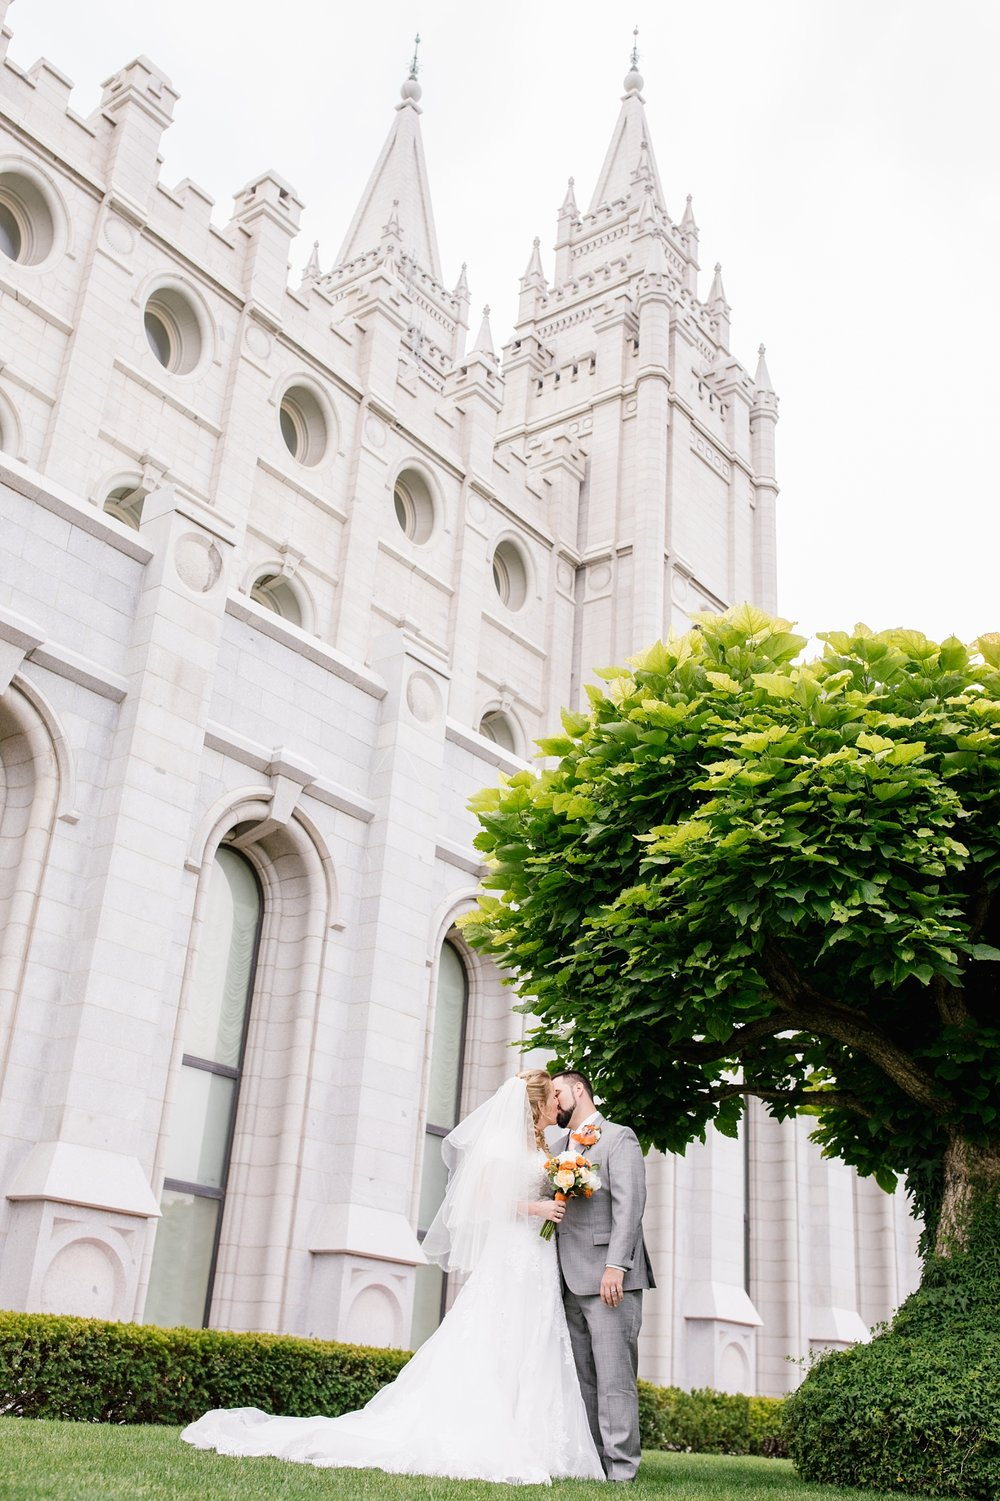 Justin and Melissa-170_Lizzie-B-Imagery-Utah-Wedding-Photographer-Salt-Lake-City-Temple-Photographer-Lion-House-Luncheon-The-Grand-Ballroom-Bountiful.jpg